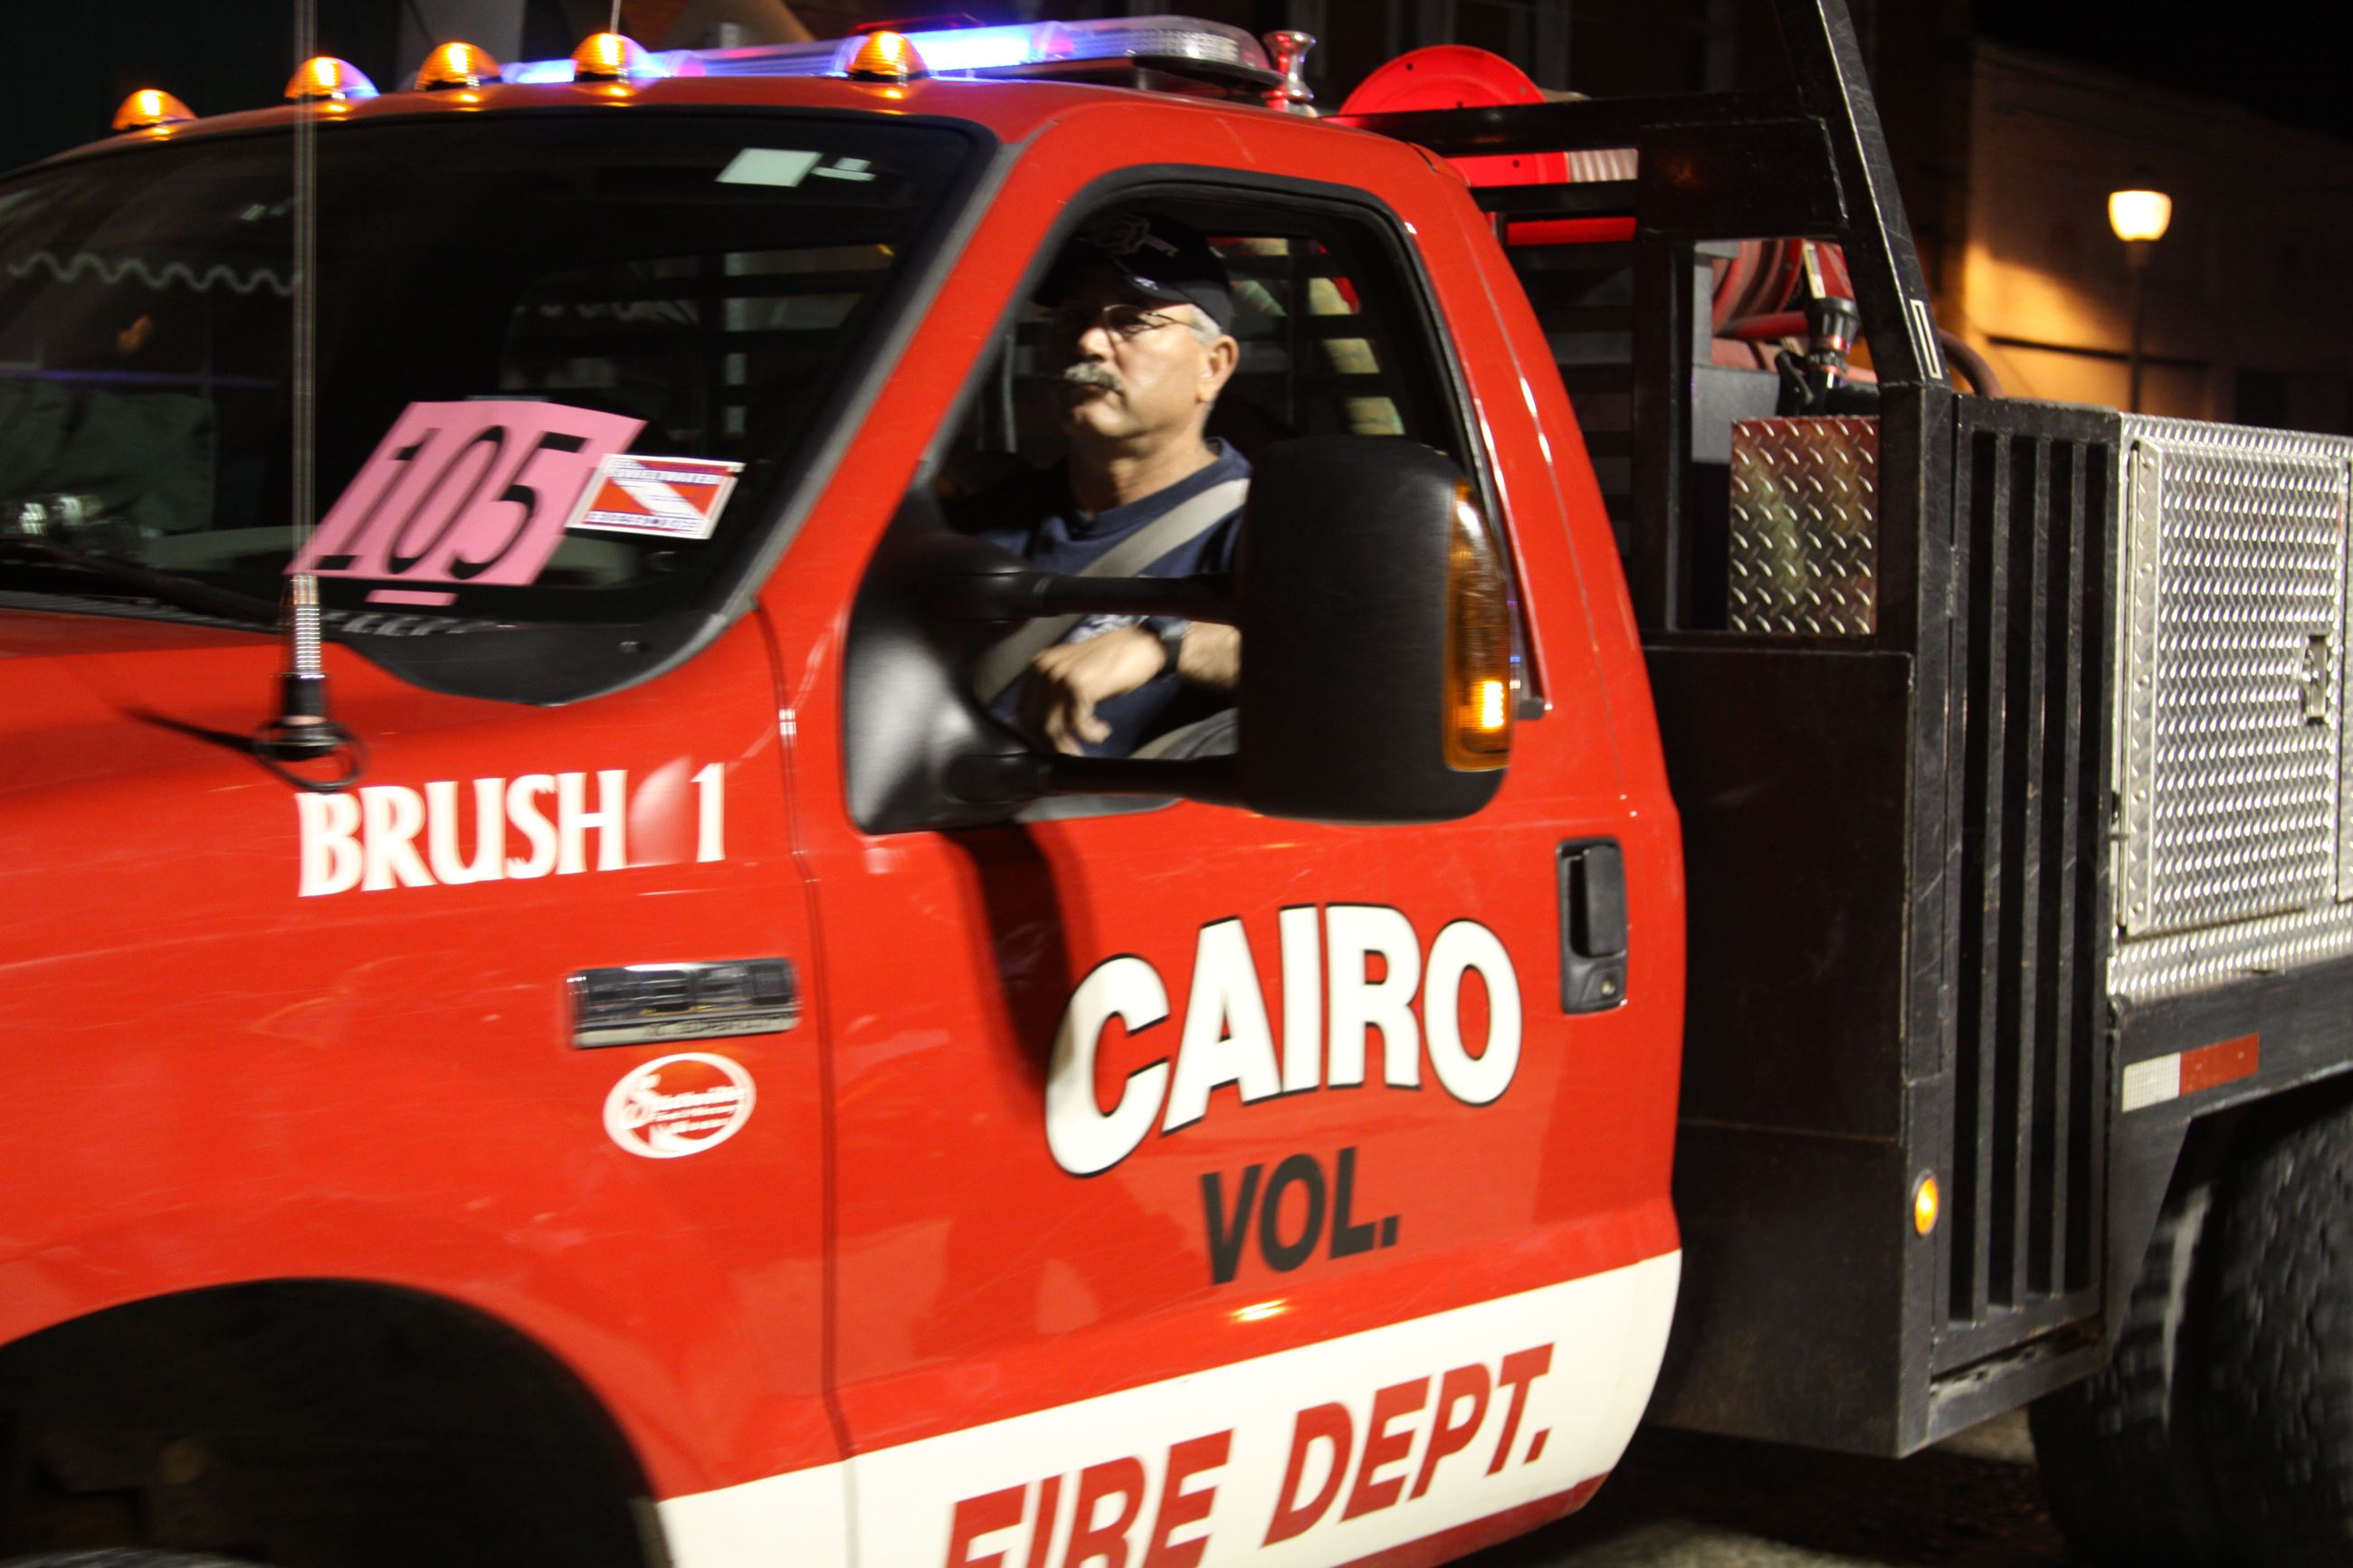 105 - Cairo Fire Department